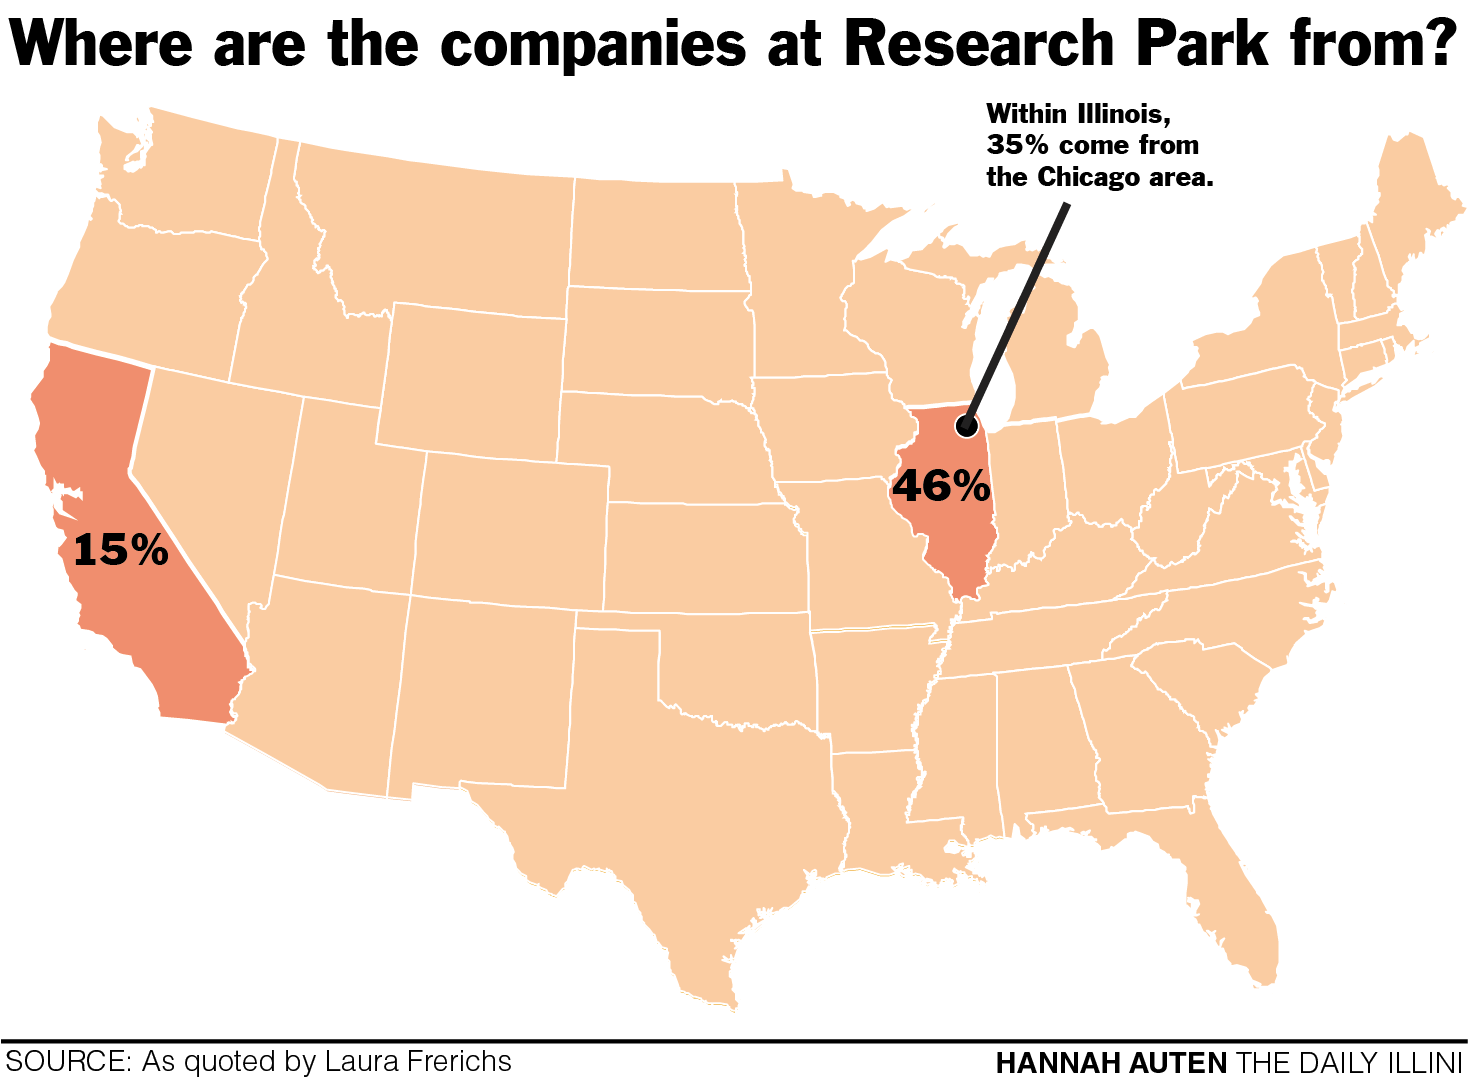 %3Cp%3EThe+Research+Park%2C+established+at+the+University+in+2008%2C+draws+companies+from+across+the+country+because+of+its+resources%2C+recruiting+ability+and+student+workforce.%26nbsp%3B%3C%2Fp%3E